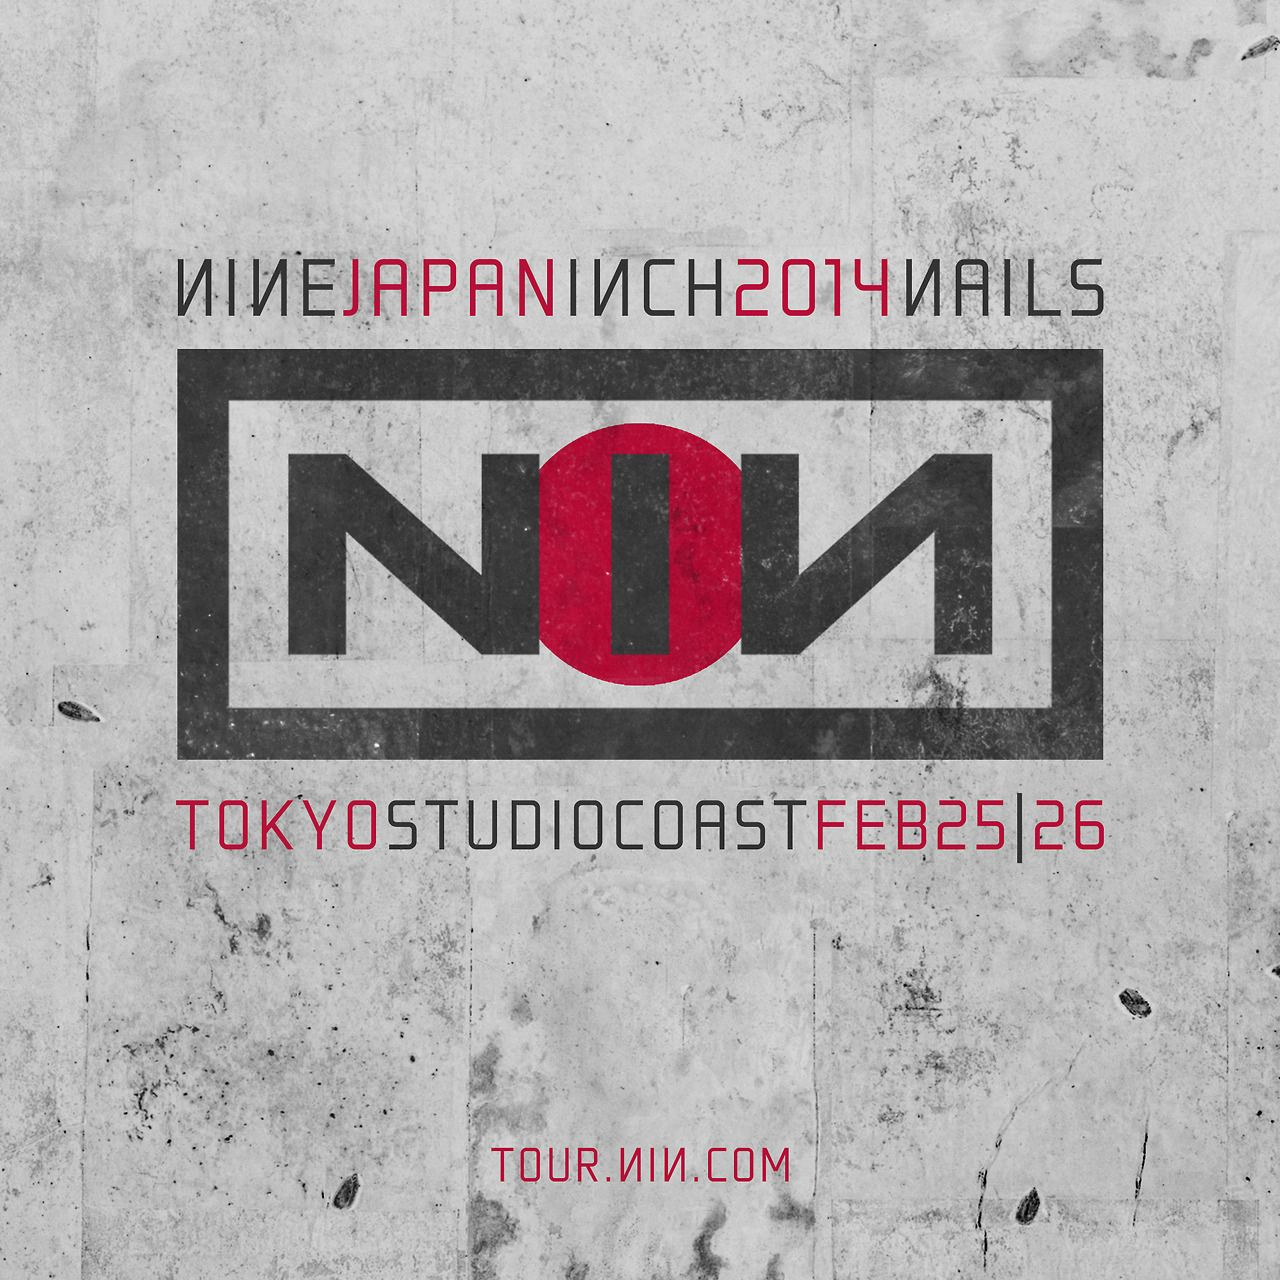 We\'re returning to Tokyo, Japan for 2 shows at Studio Coast on ...